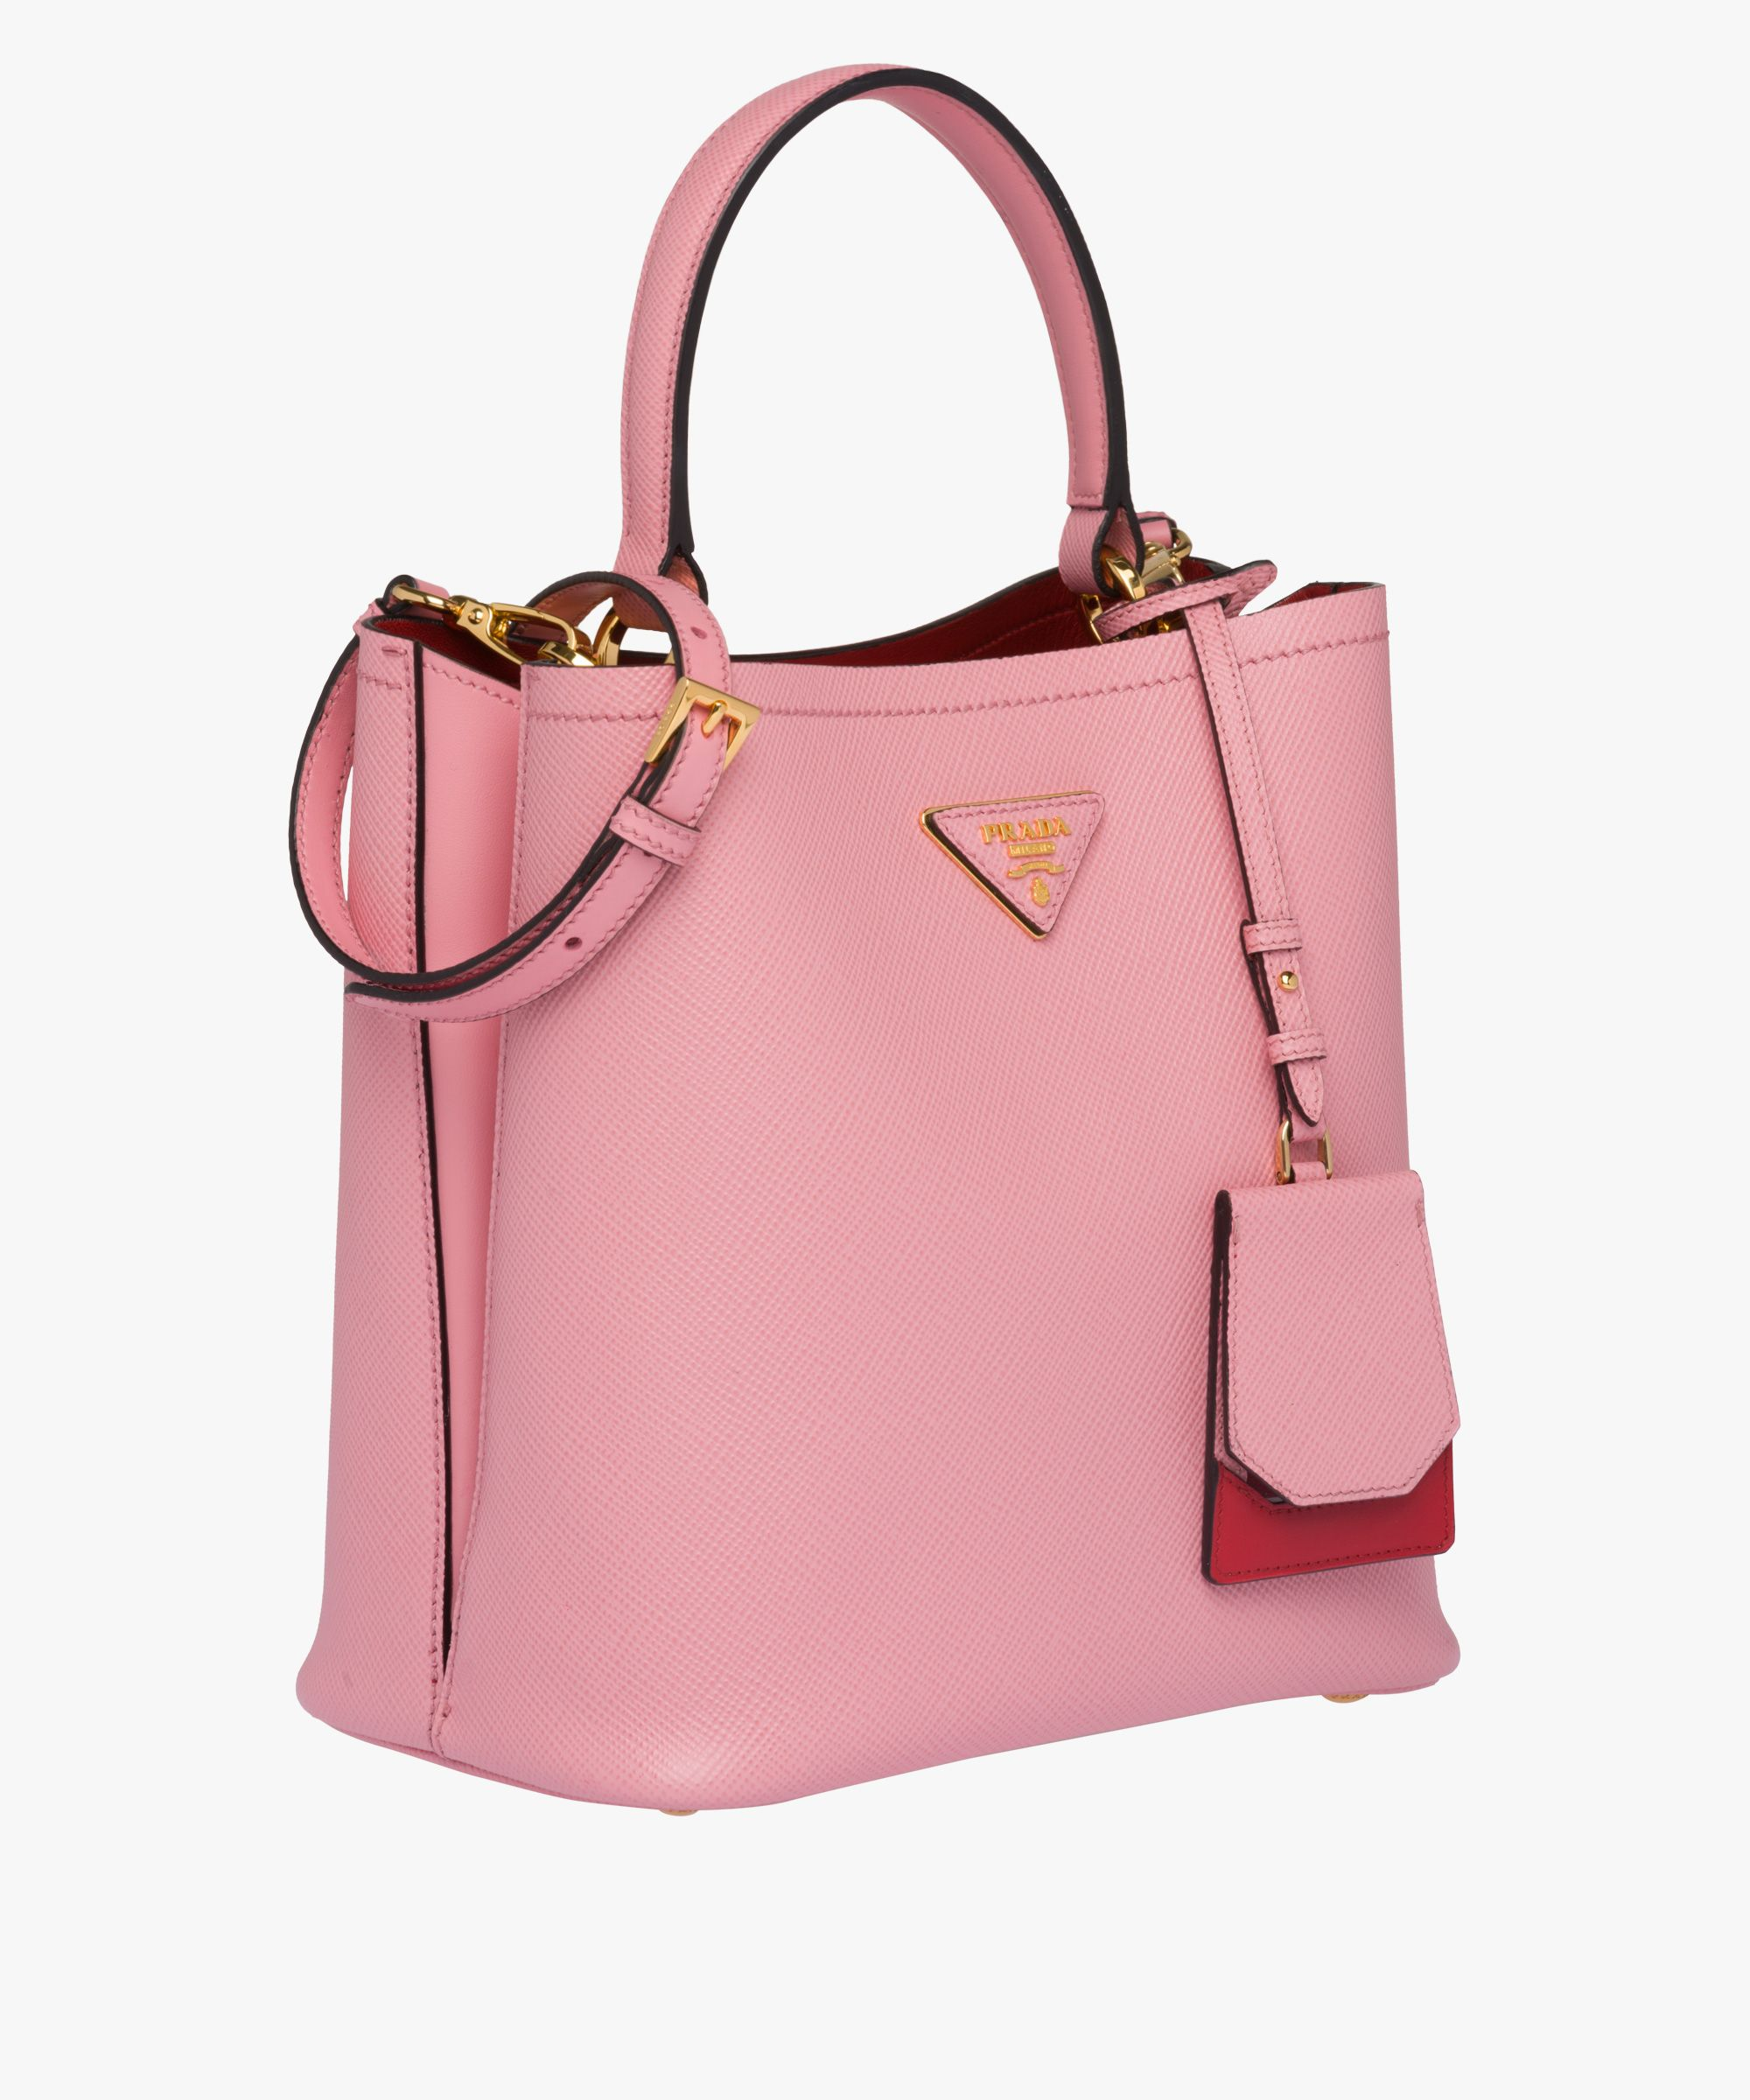 c5f7283c74bf Prada - Double Medium petal pink/ fiery red bag | BAGS in 2019 ...